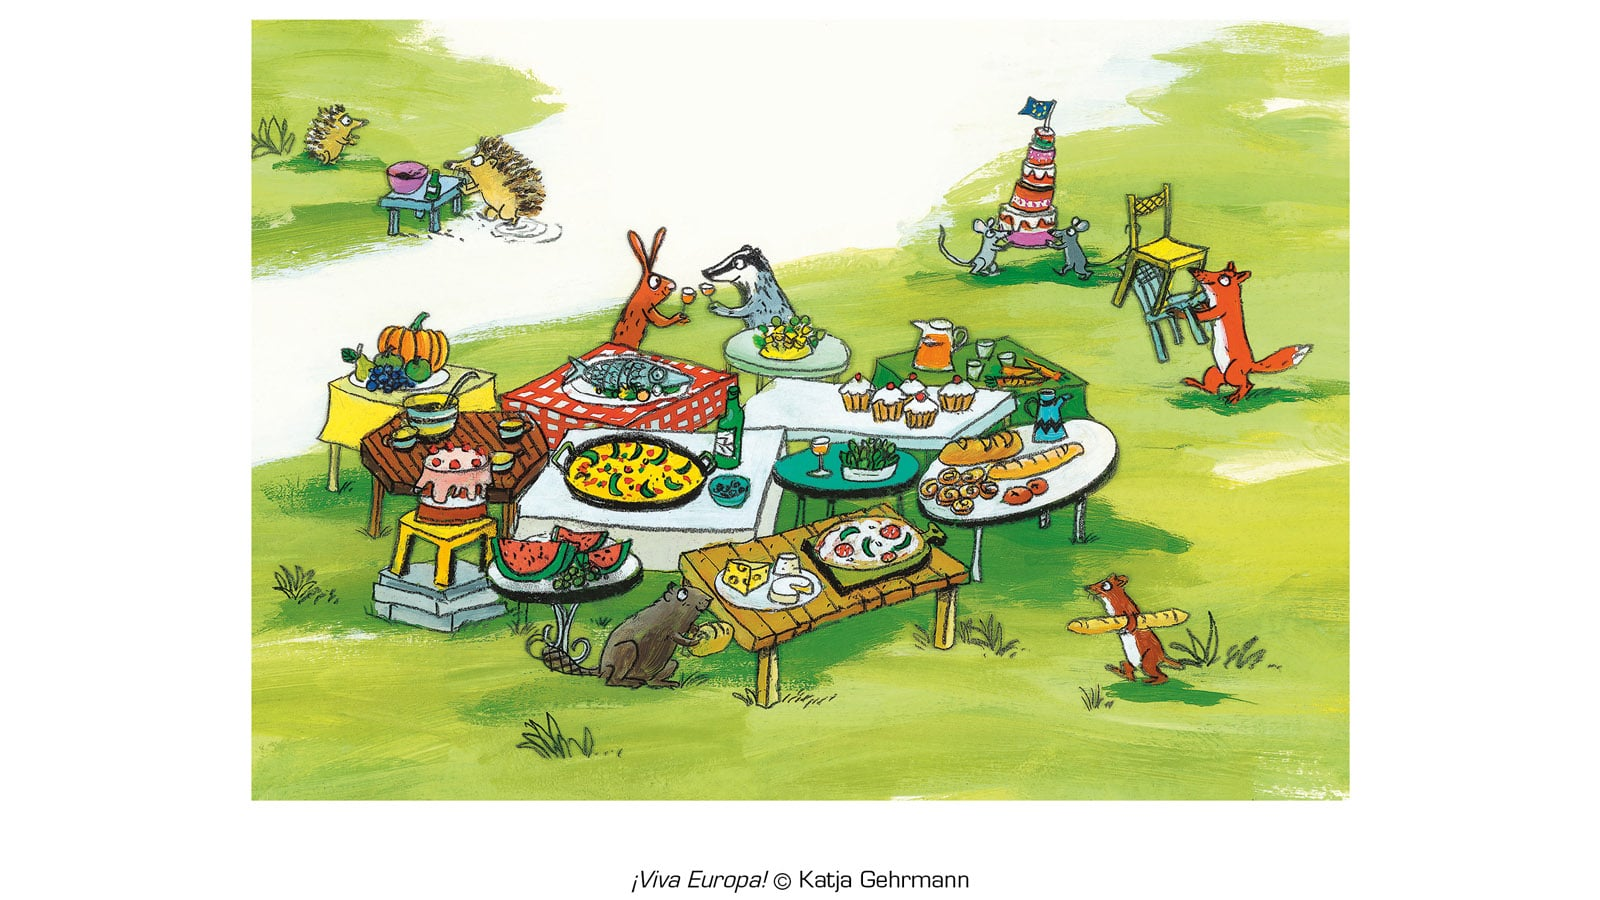 Hedgehogs leave the other animals sharing a feast under a EU flag to eat their small meal alone